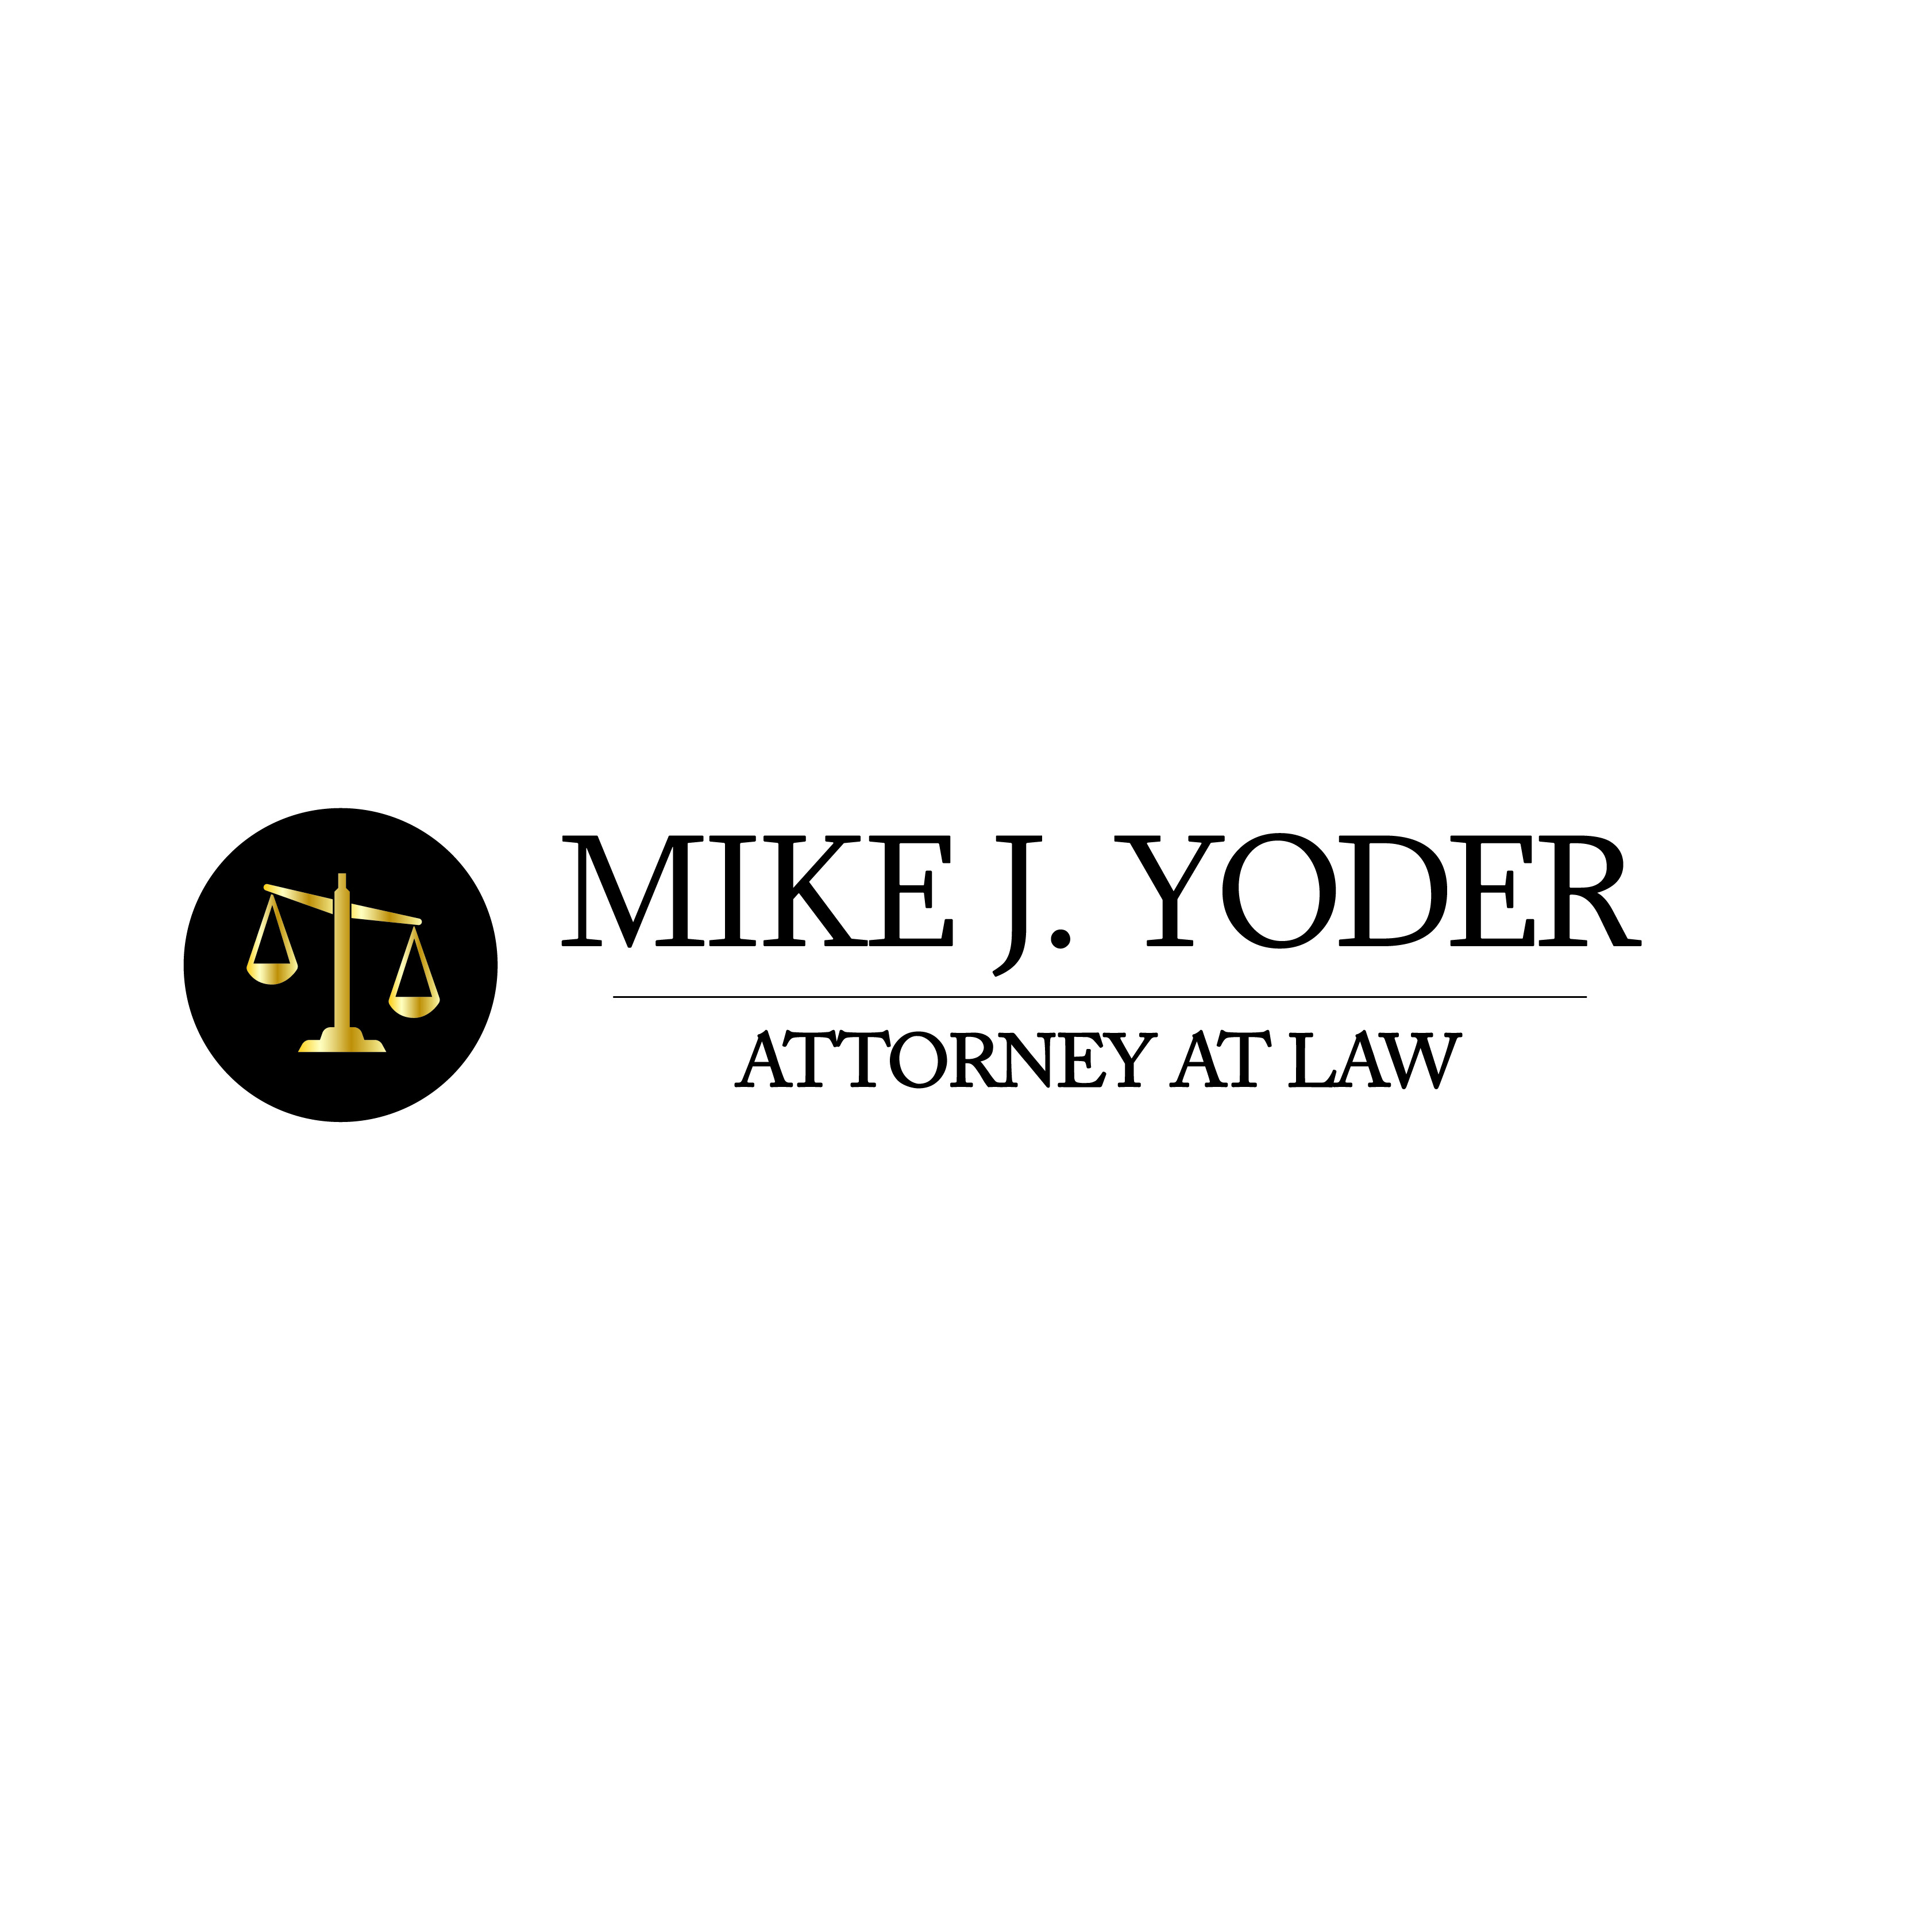 mike yoder attorney